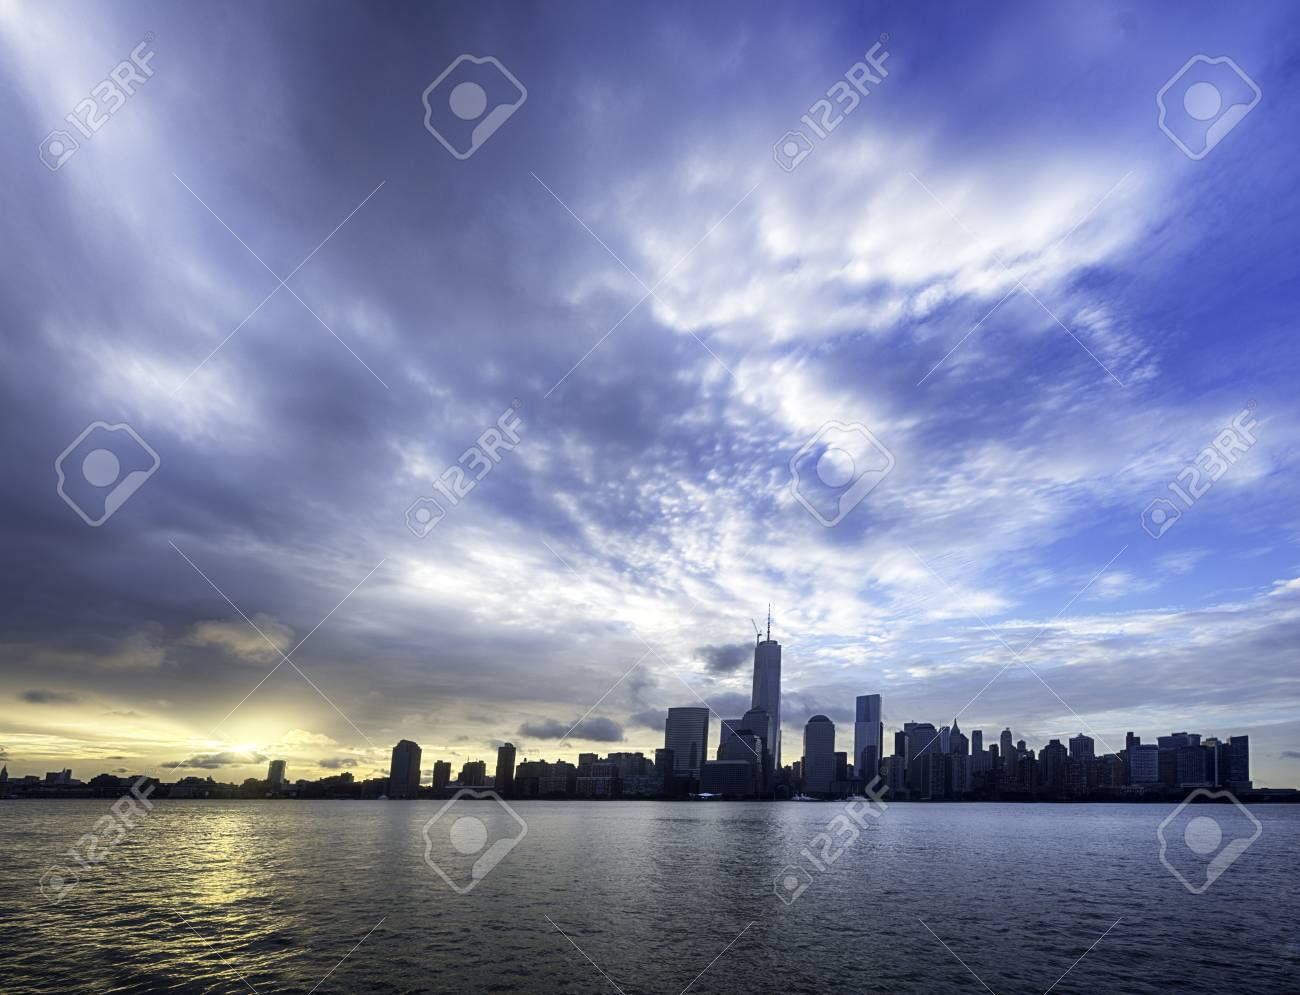 NYC at Sunrise Stock Photo - 21889462